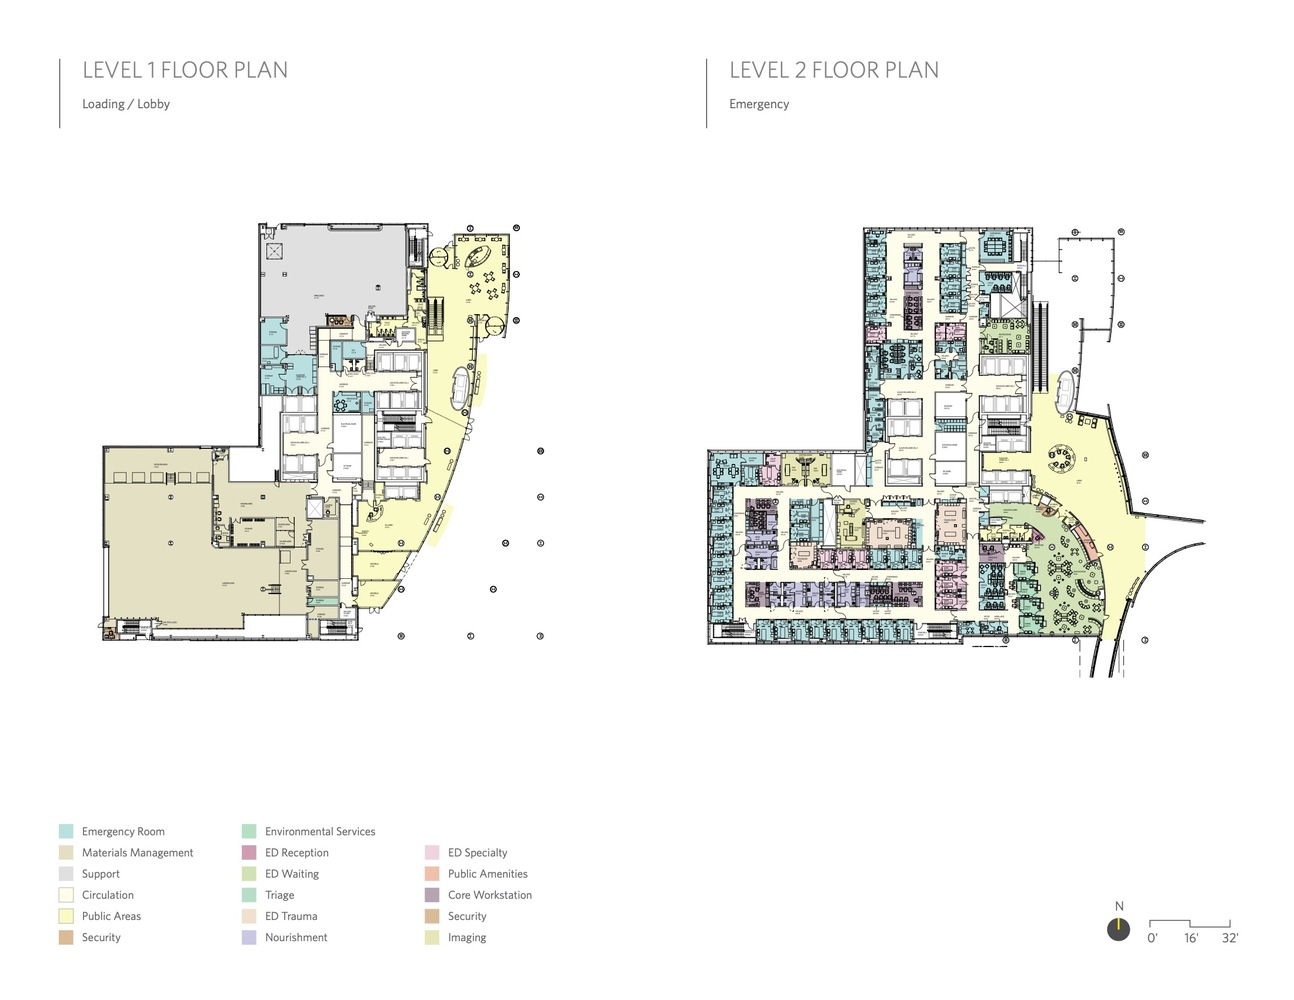 hight resolution of ann robert h lurie children s hospital of chicago zgf architects solomon cordwell buenz anderson mikos architects level 1 and 2 floor plan